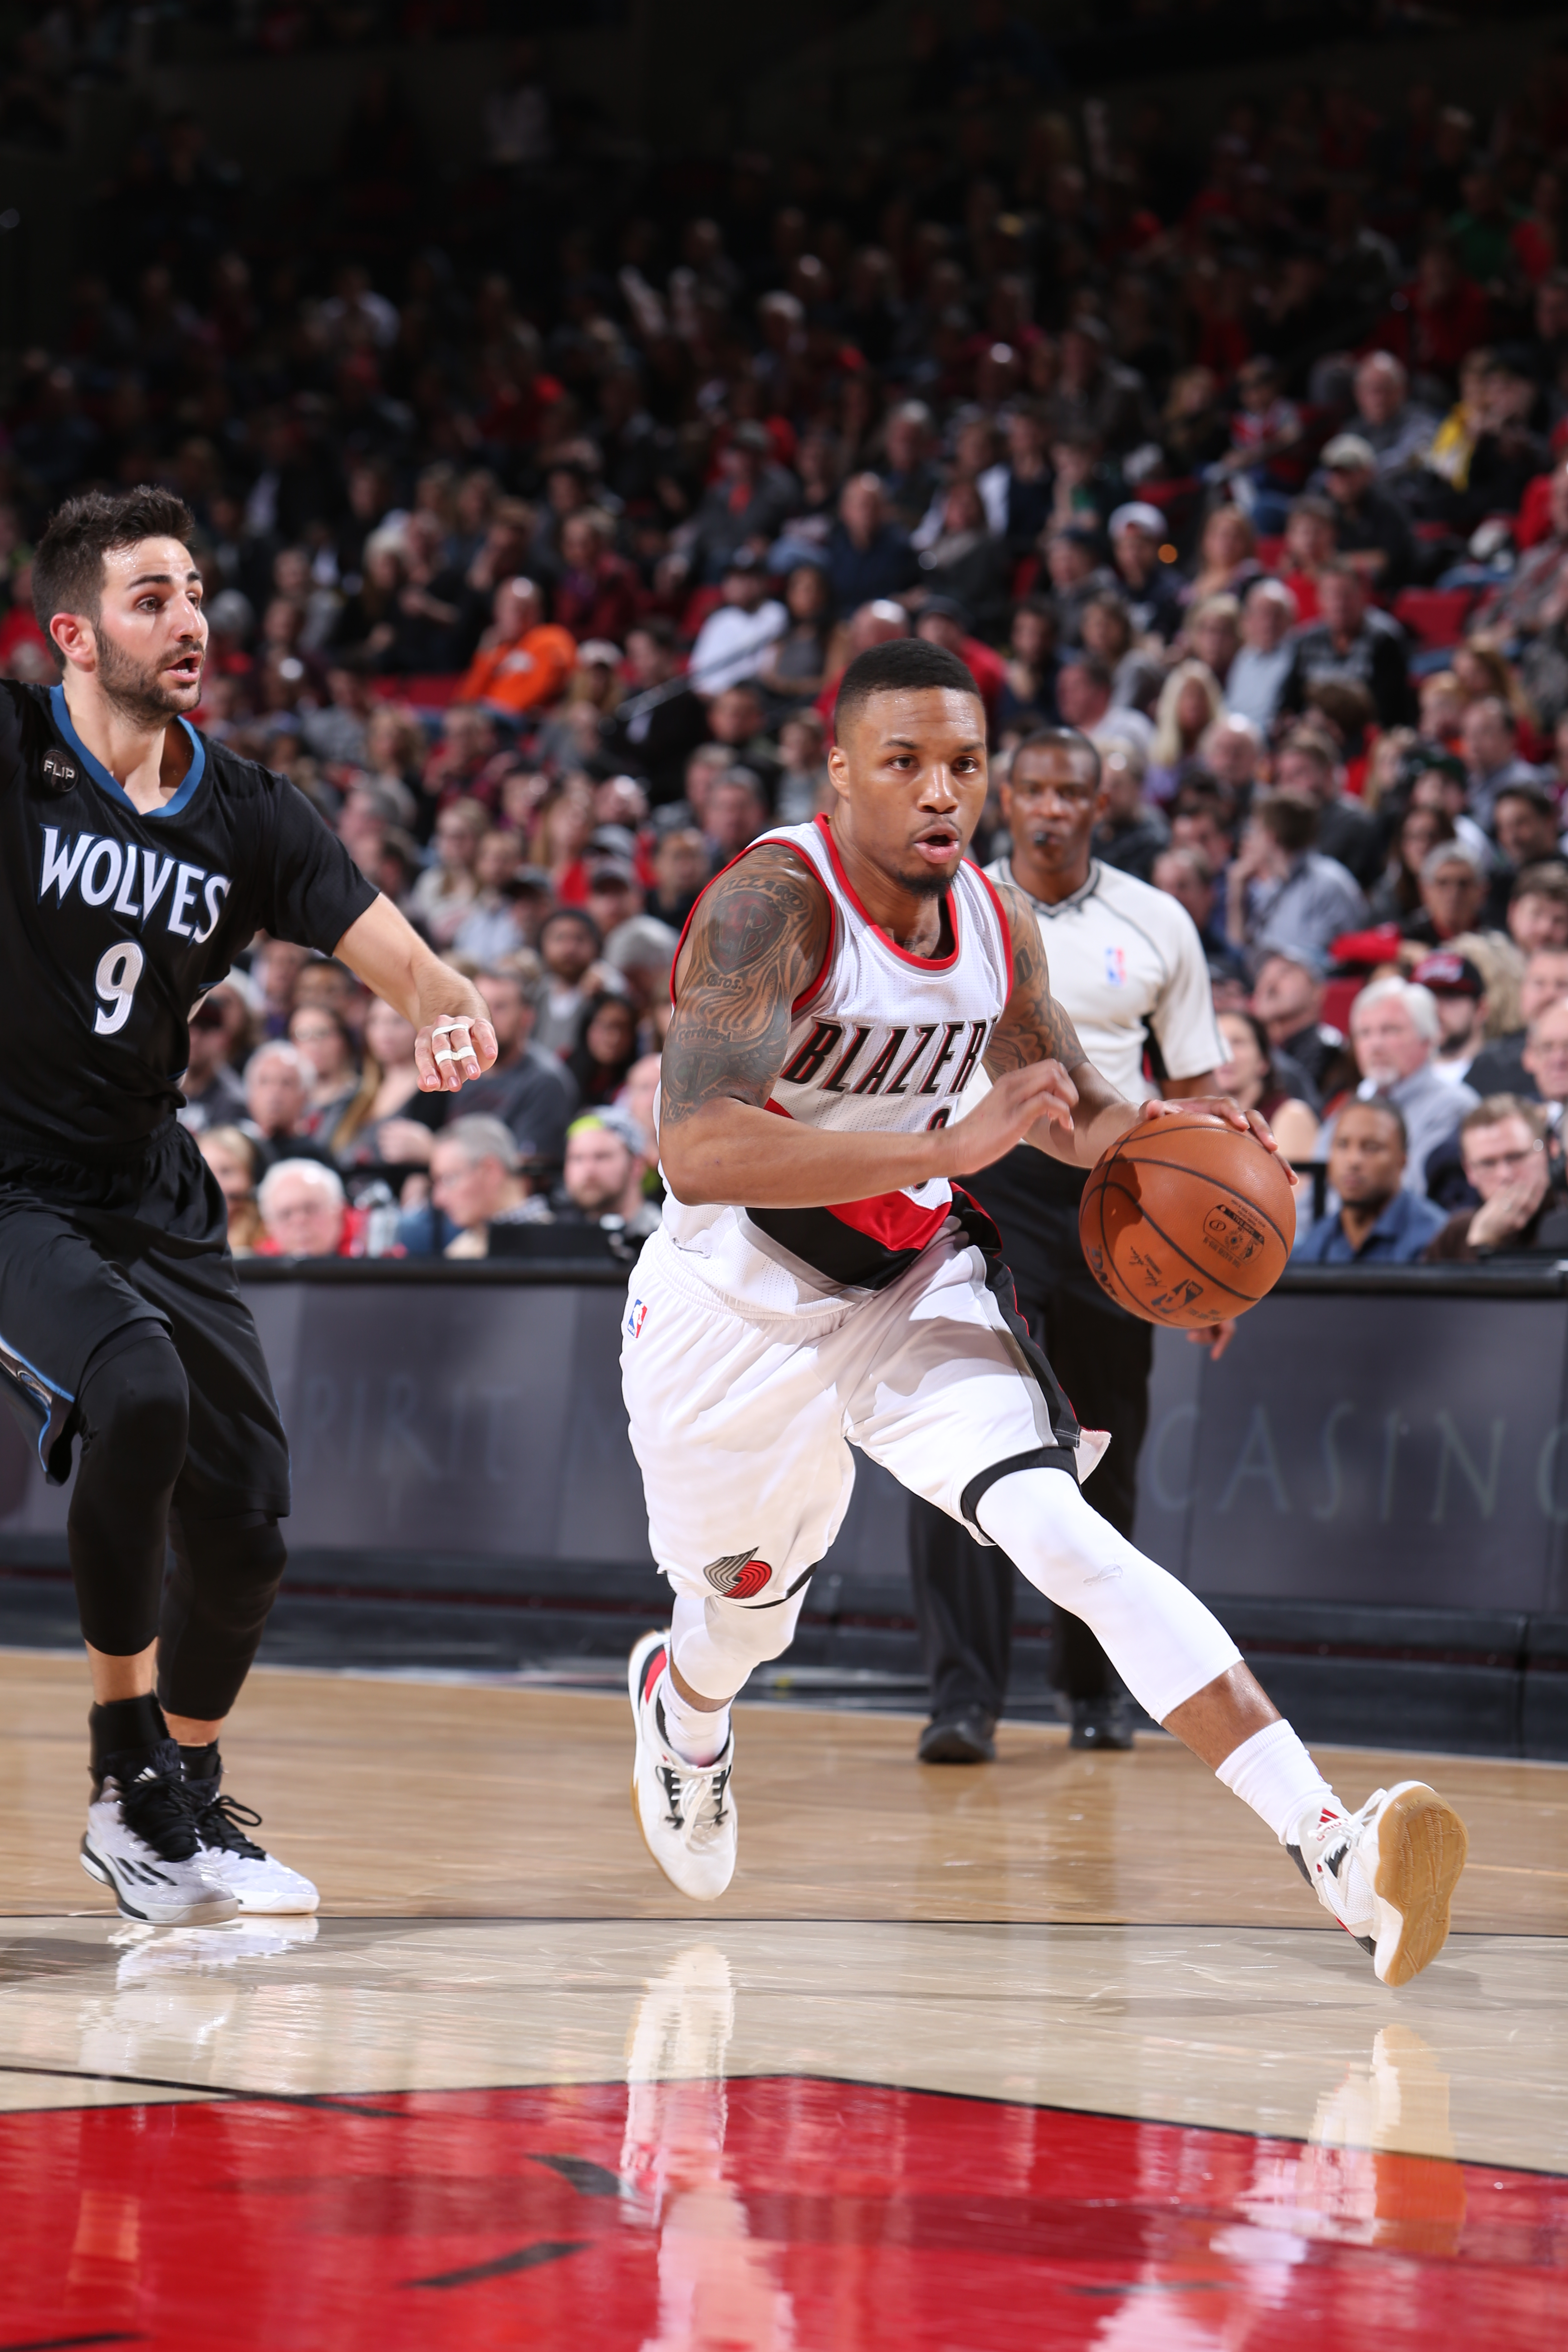 PORTLAND, OR - JANUARY 31:  Damian Lillard #0 of the Portland Trail Blazers drives to the basket against the Minnesota Timberwolves on January 31, 2016 at the Moda Center in Portland, Oregon. (Photo by Sam Forencich/NBAE via Getty Images)